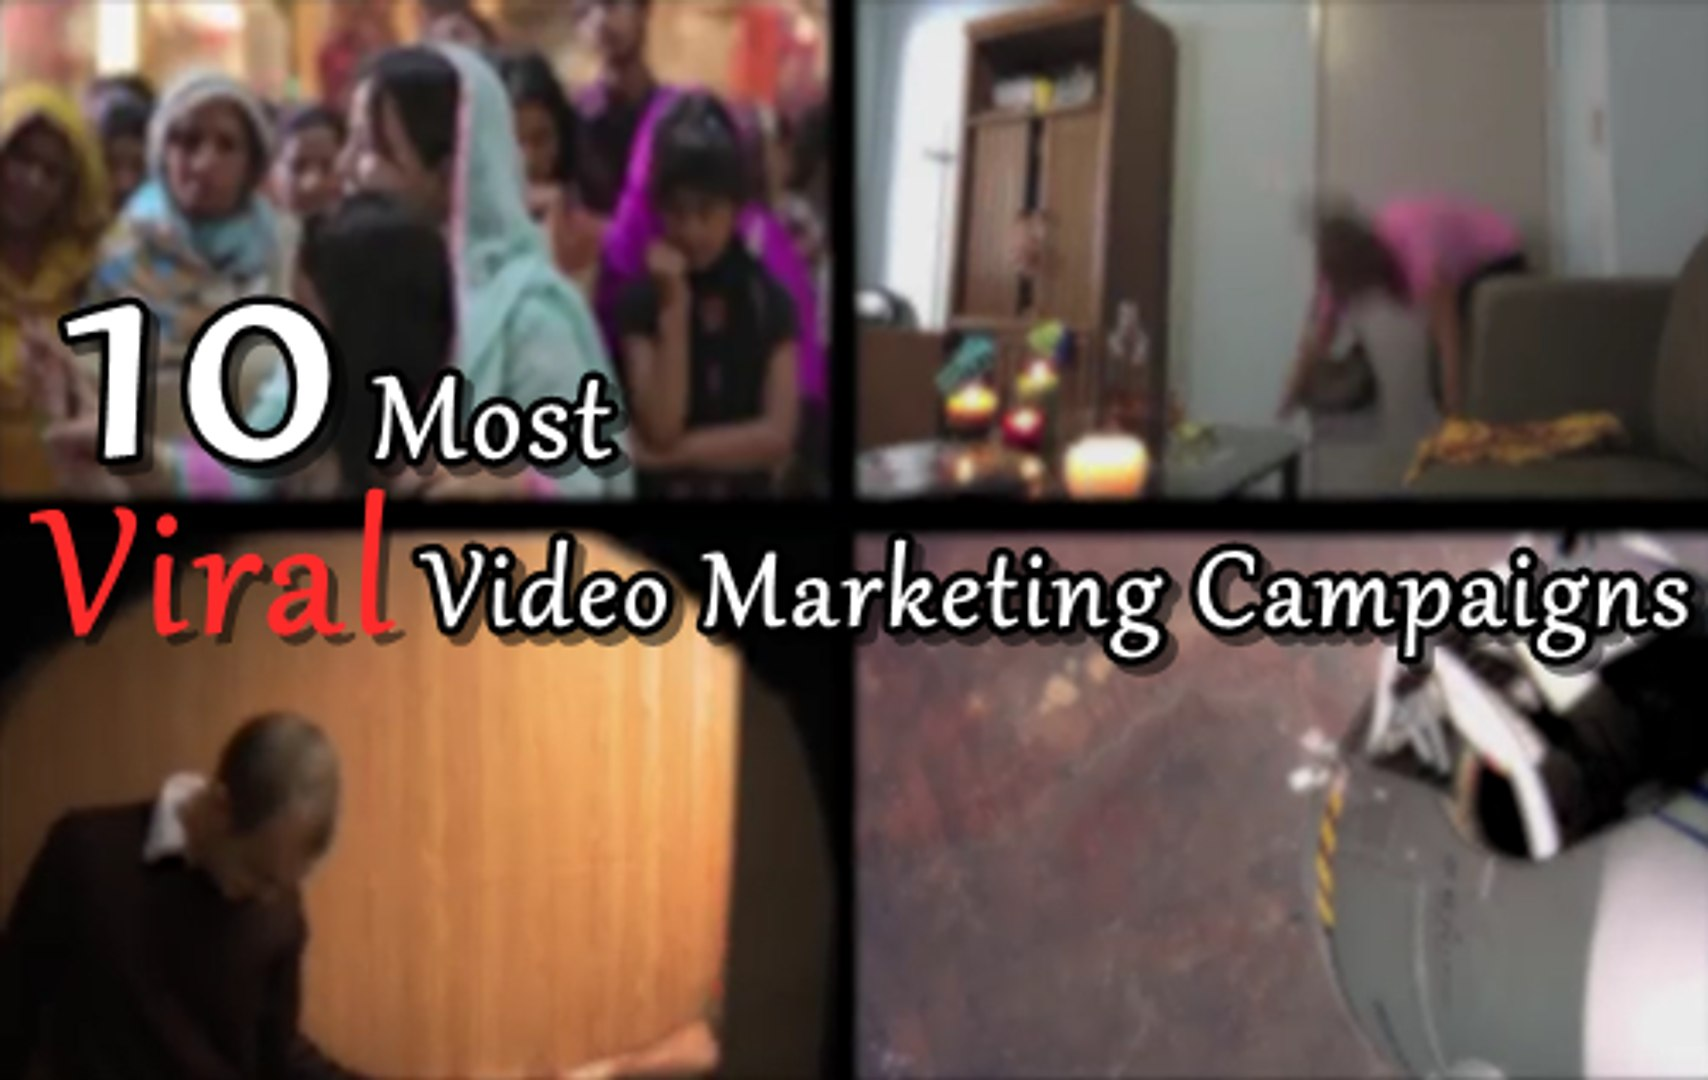 Top 10 Most Viral Video Marketing Campaigns